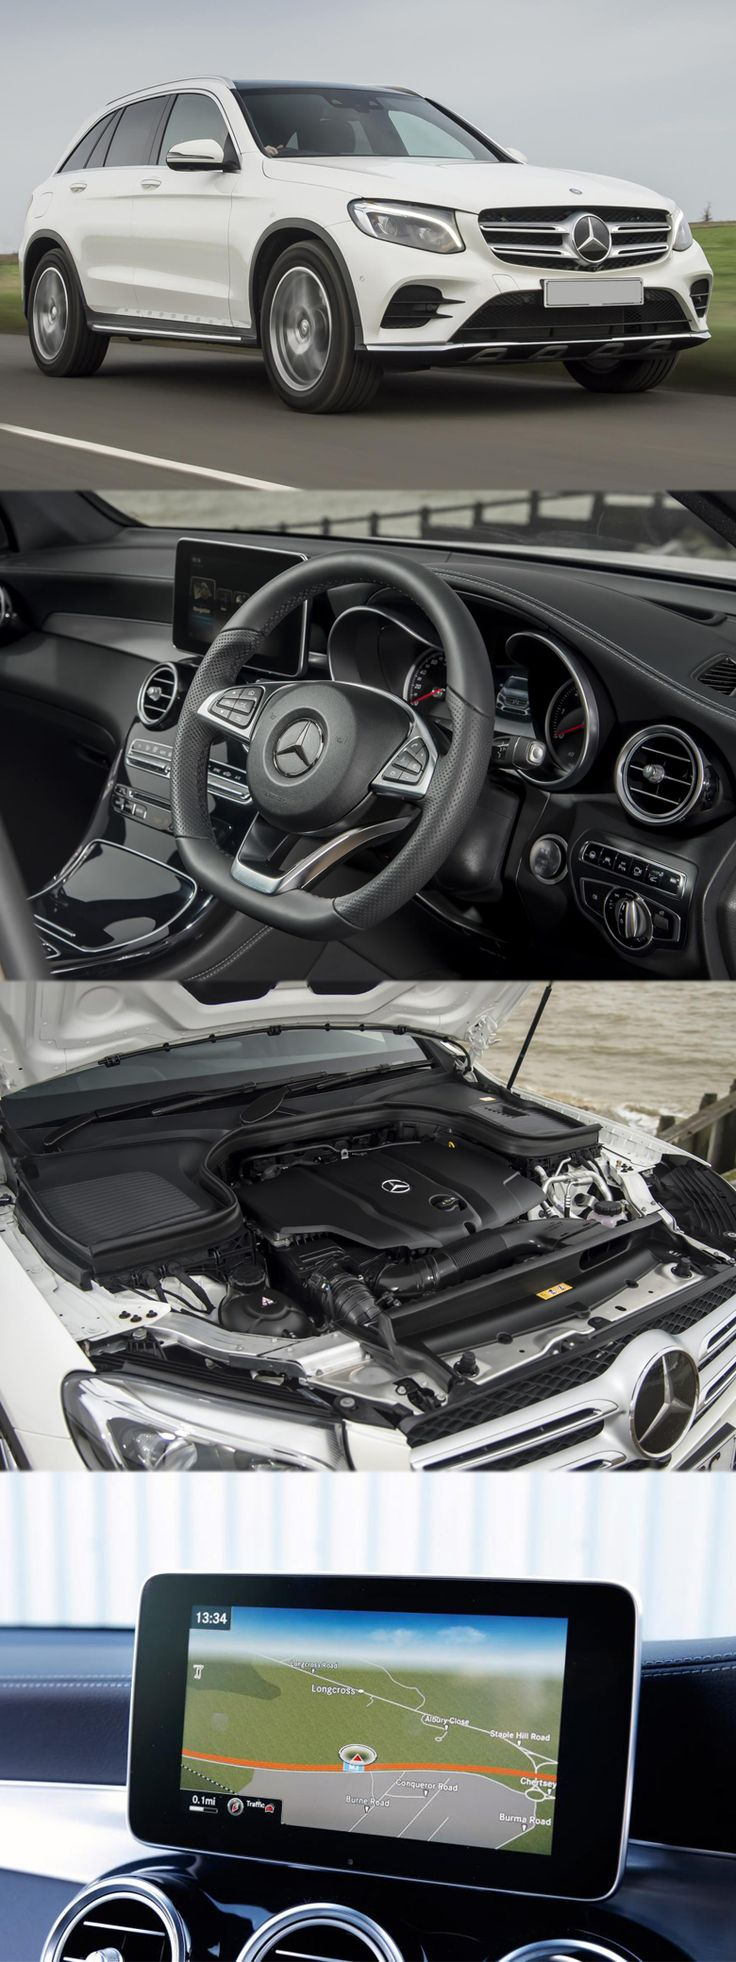 Stylish and Luxurious, GLC-Class is the Best Product of Mercedes Benz https://www.enginetrust.co.uk/mercedes-benz-engines